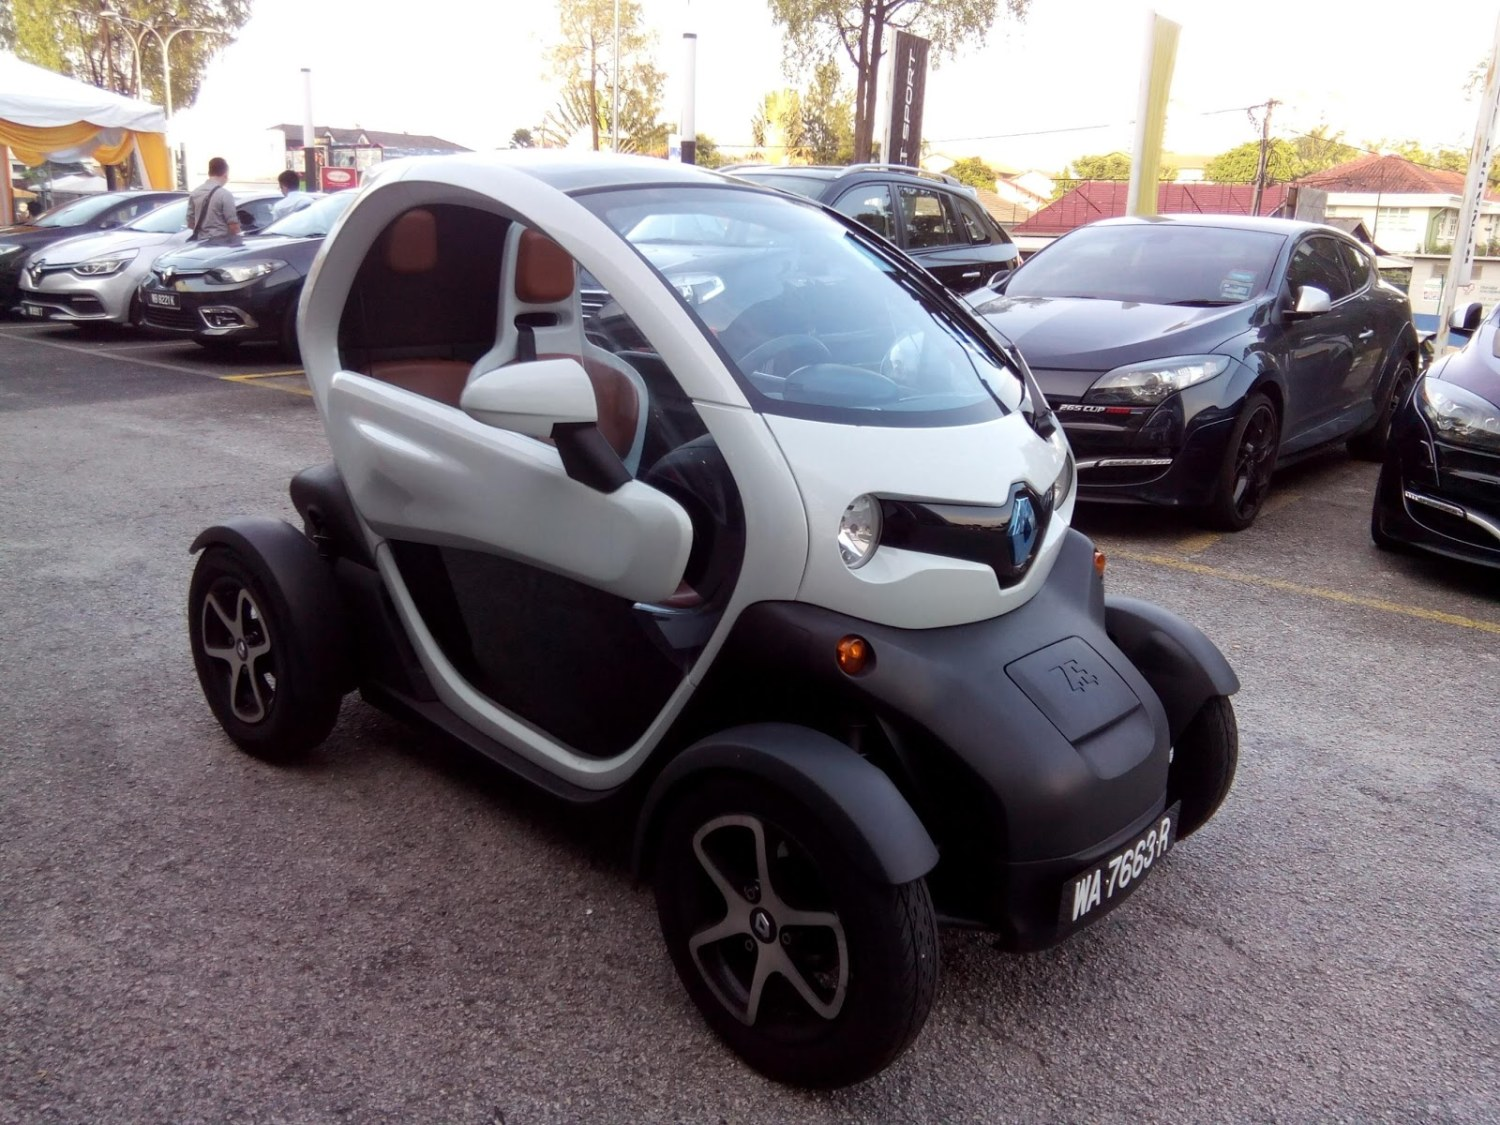 renault twizy exterior 1828 cars performance reviews and test drive. Black Bedroom Furniture Sets. Home Design Ideas